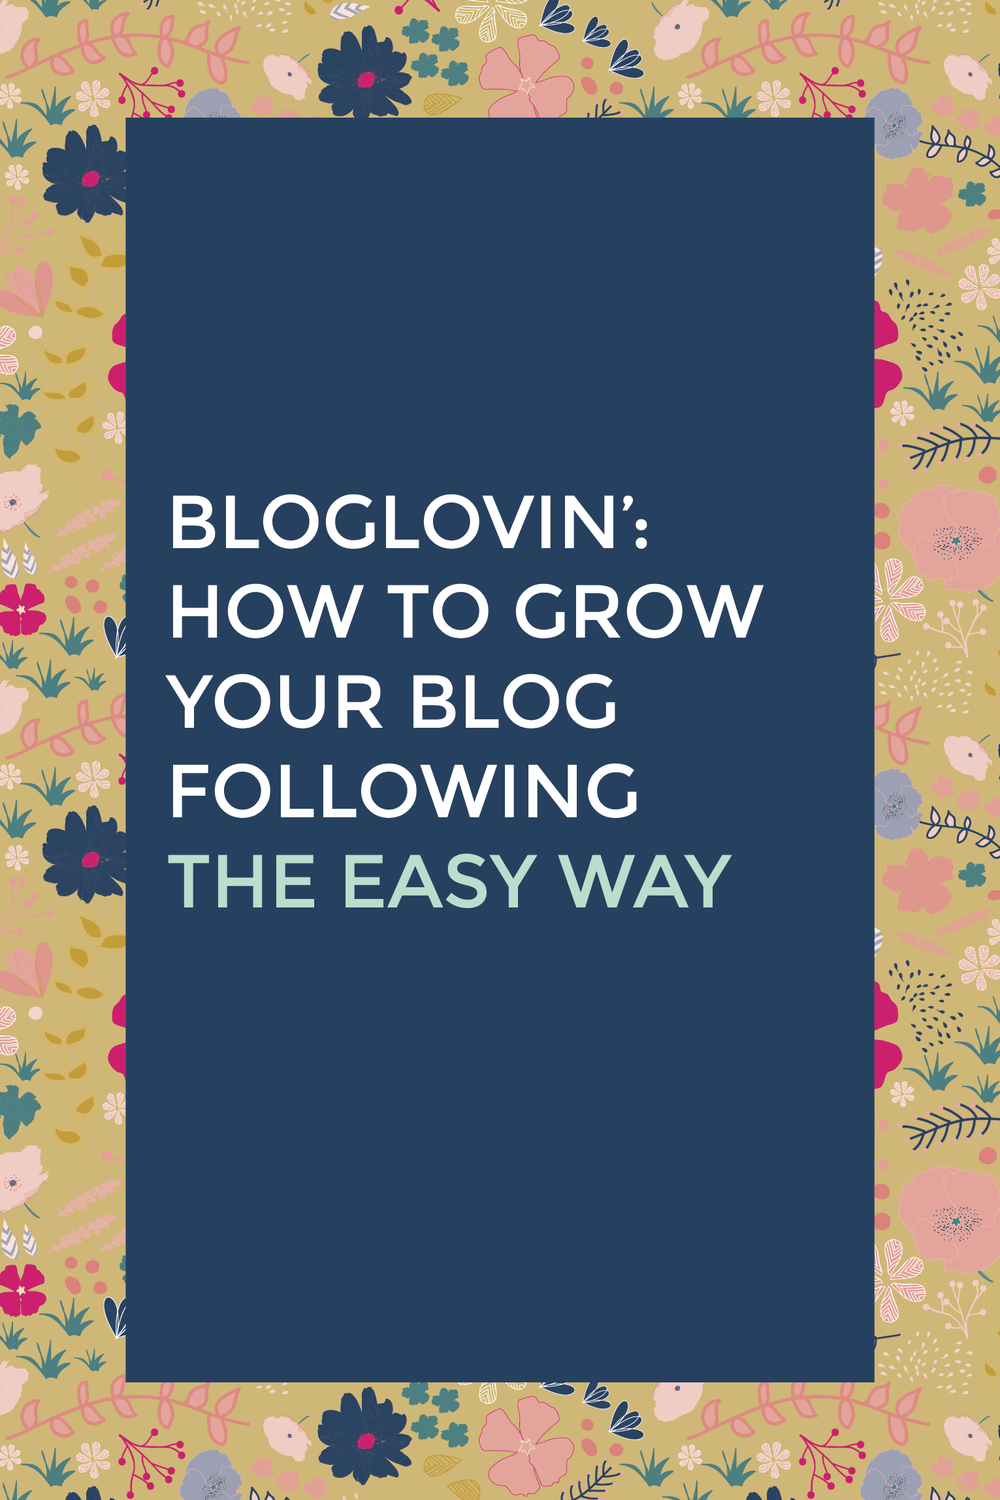 Bloglovin':  How to Grow your Blog Following the Easy Way